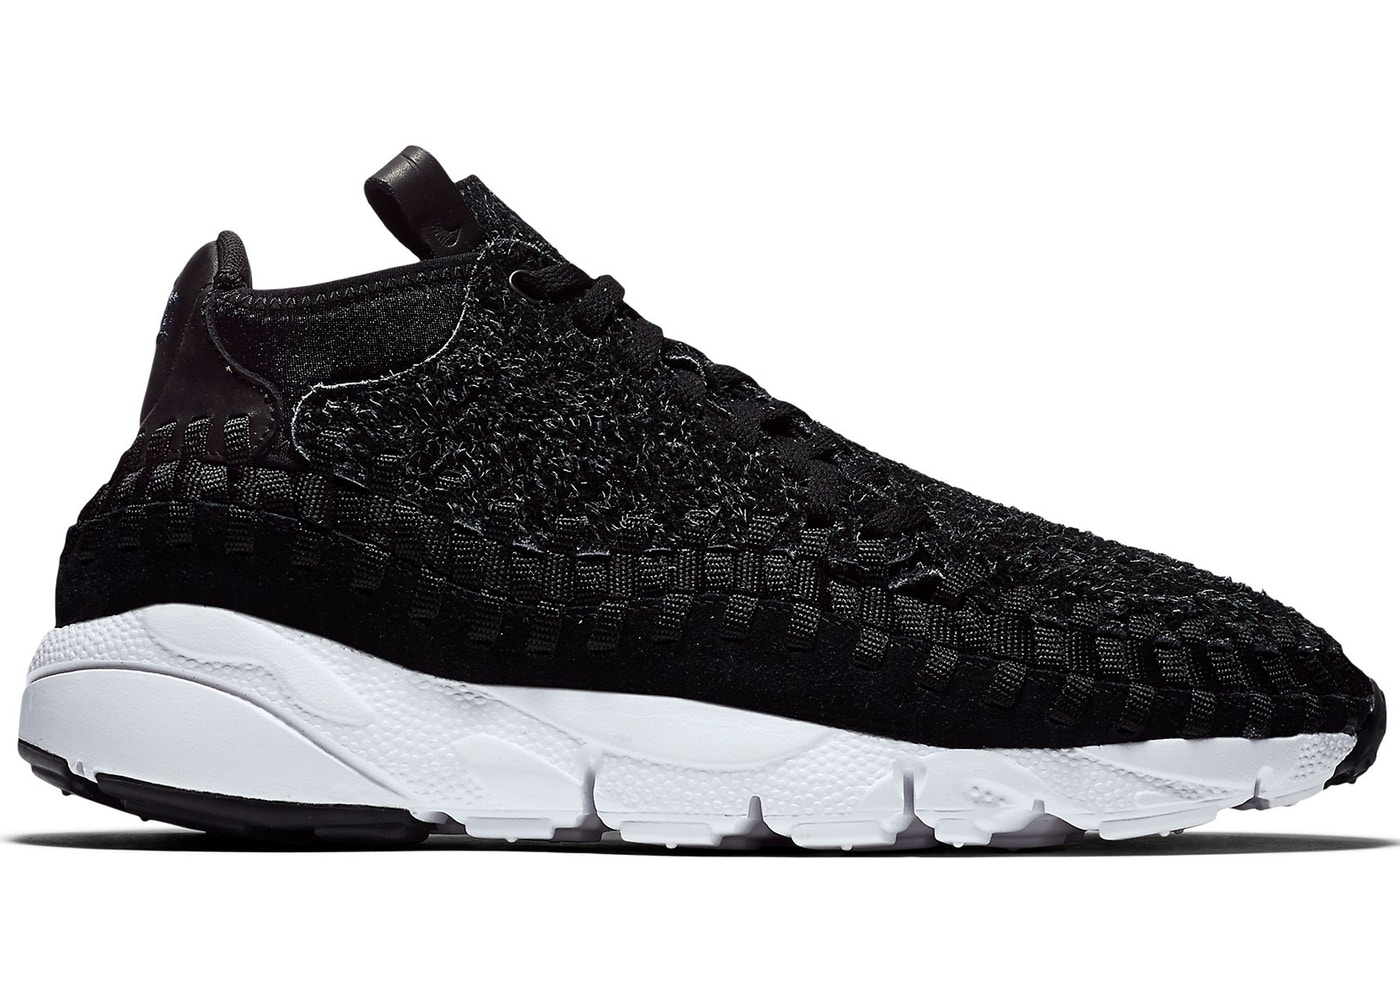 hot sale online dfa17 6a713 Air Footscape Woven Chukka Black - 913929-001